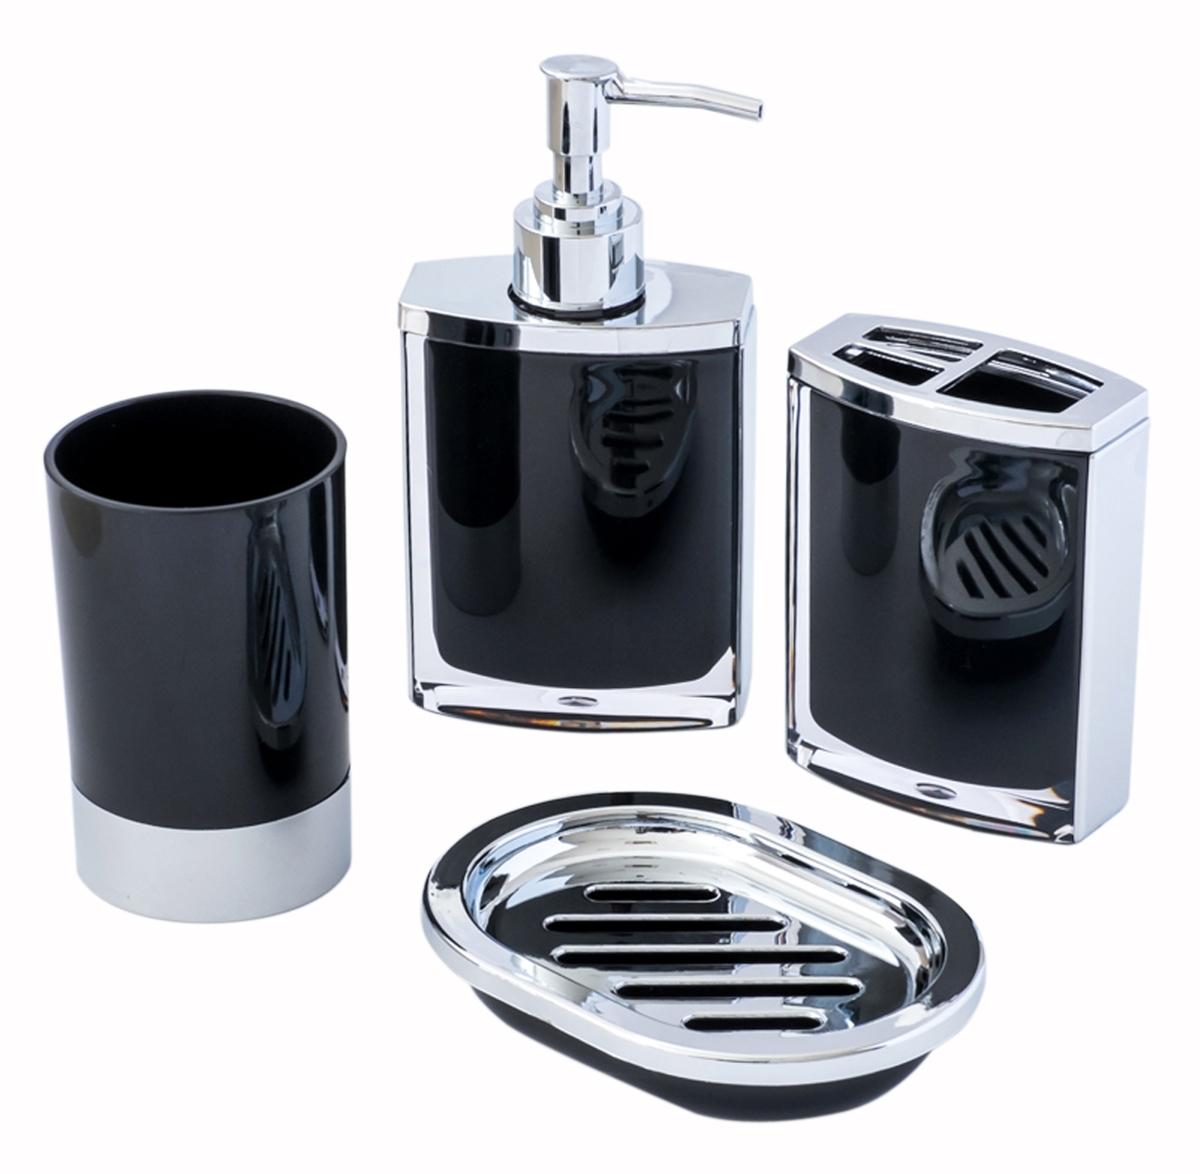 4-Piece Vogue Black and Chrome Bathroom & Shower Accessory Set; with Lotion/Soap Dispenser, Bath Cup/Tumbler, Soap Dish, Toothbrush Holder Match for Marble or Glass Modern Bath Style